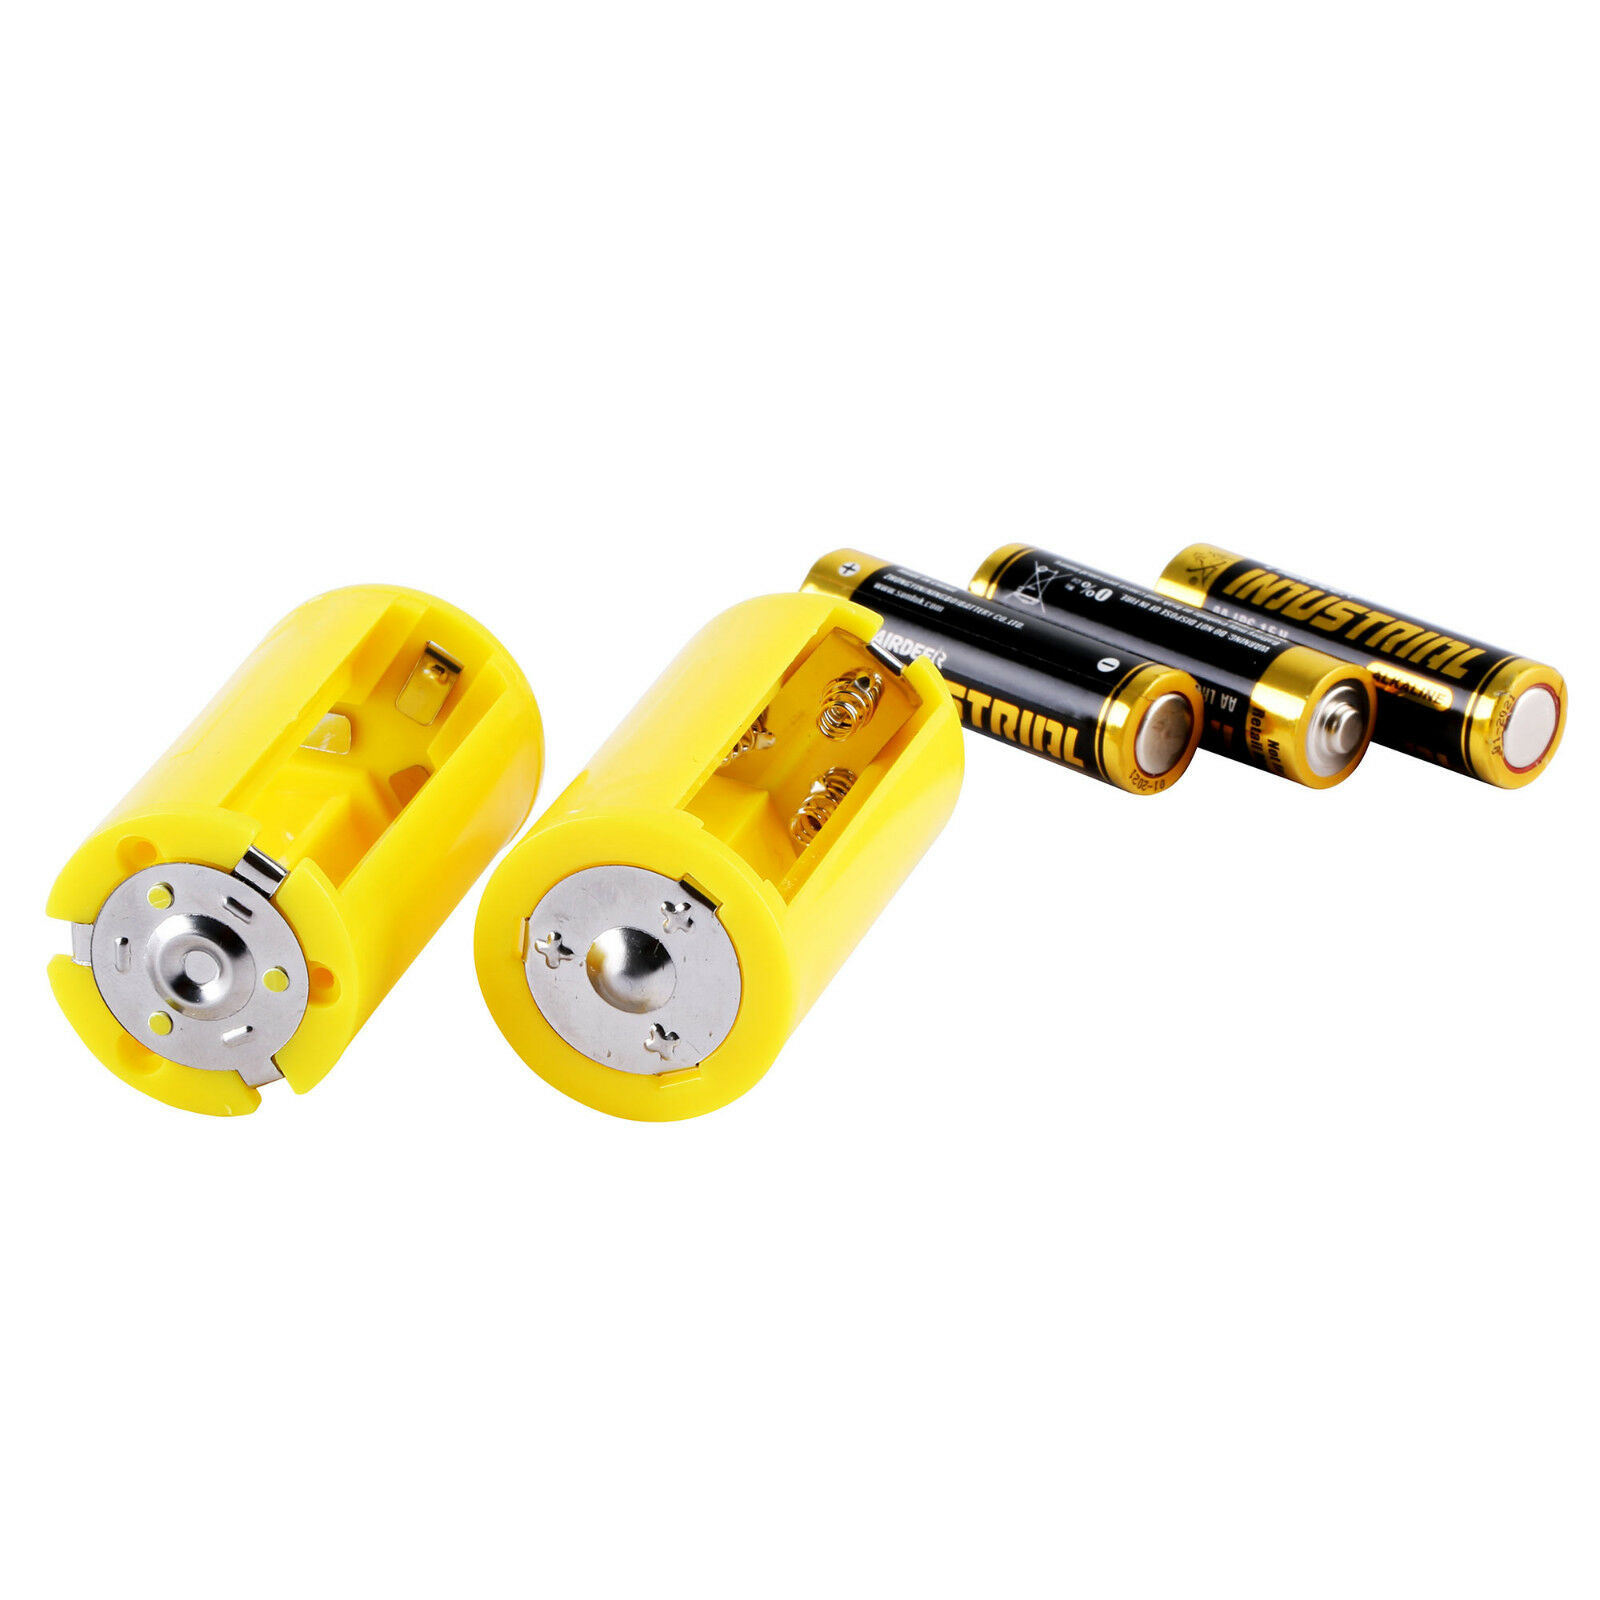 Acxico 8 Pcs AA to Size D Battery Adapters Converter Cases Plastic Parallel Yellow